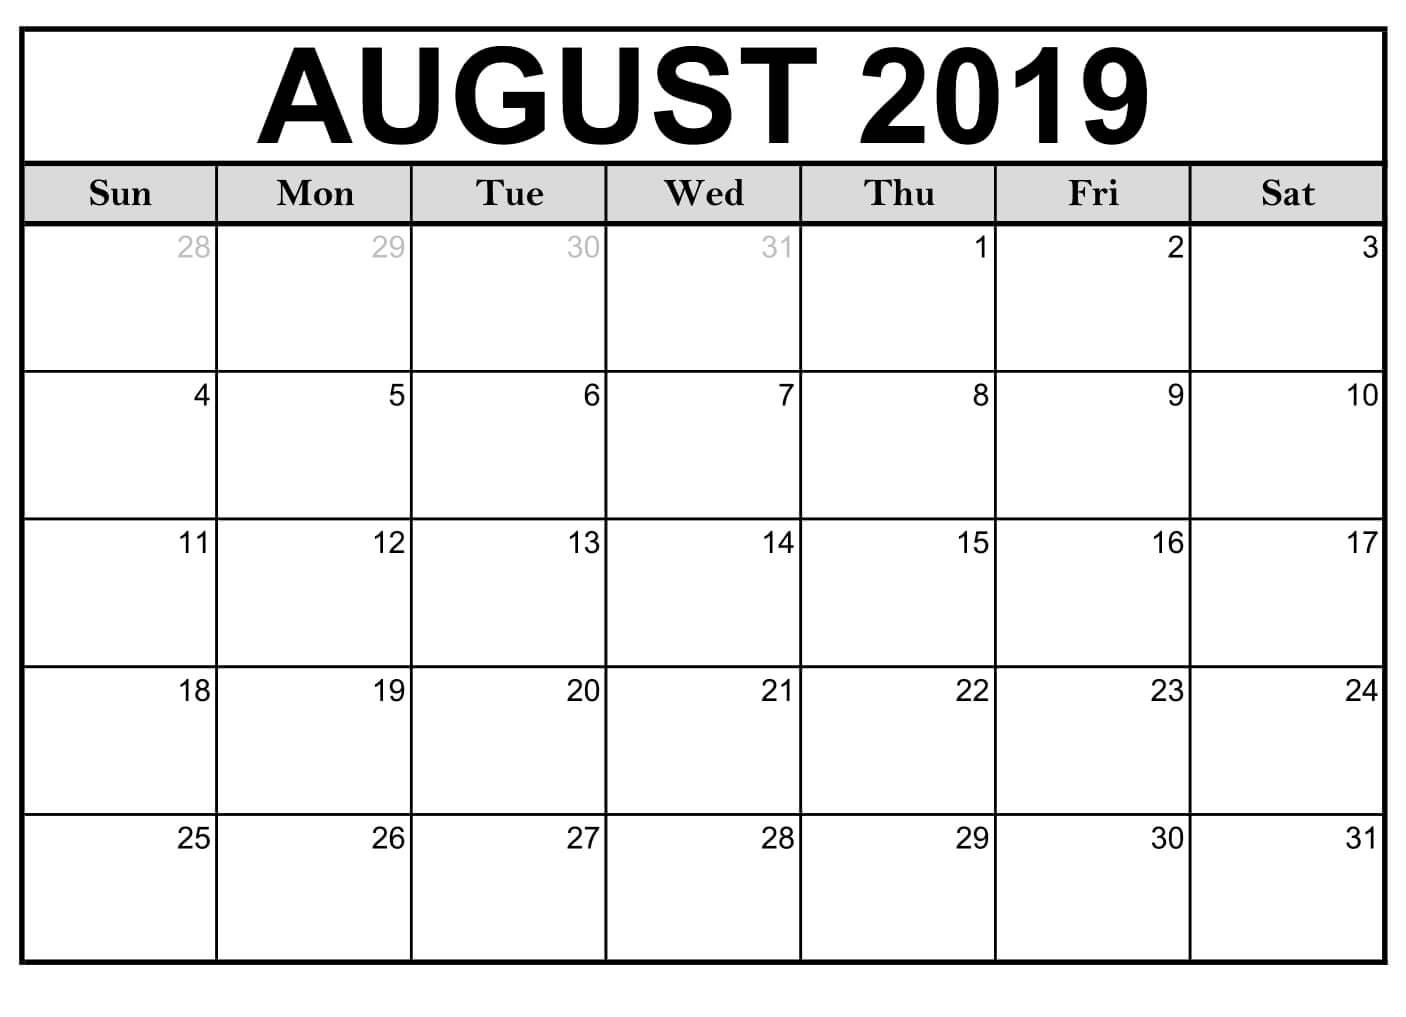 Blank August 2019 Calendar Page - Free Printable Calendar & Template within Blank Printable Calendar Pages Aug